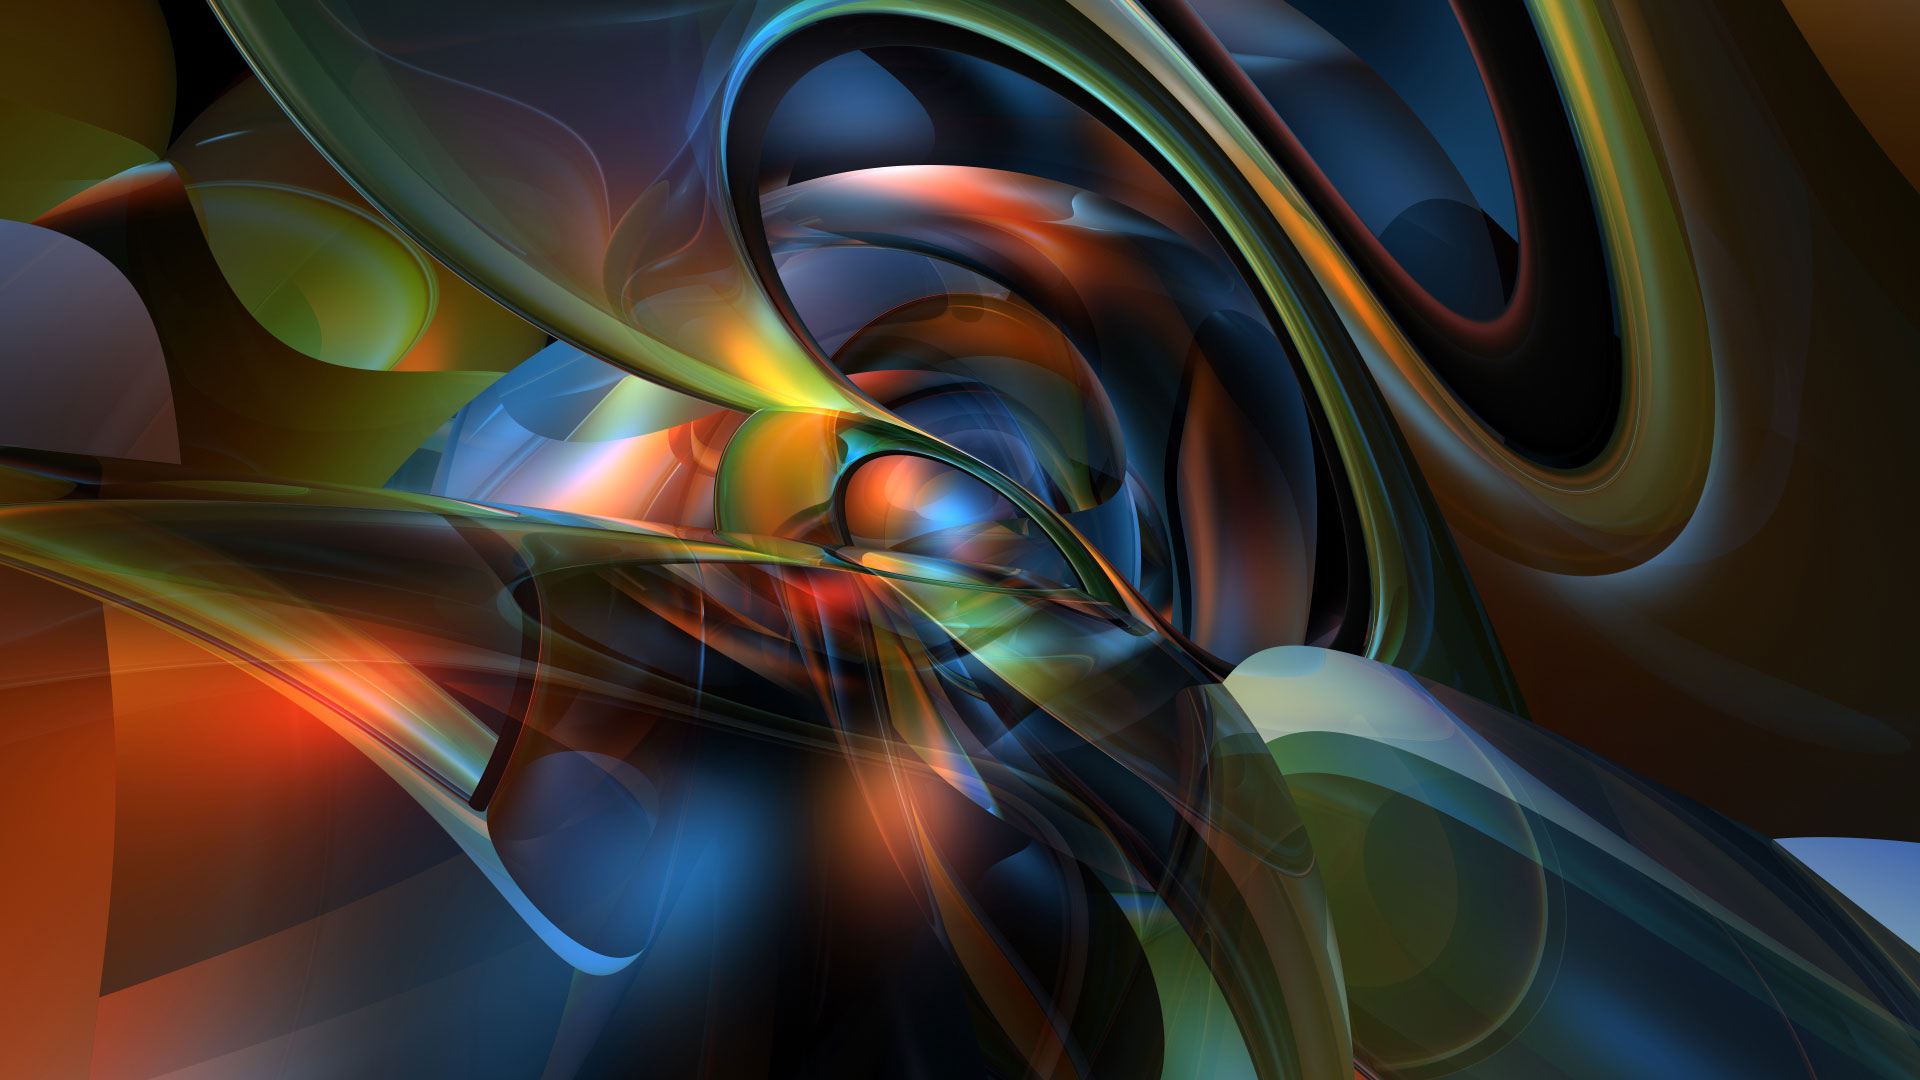 Abstract Art Wallpapers Free Download x Abstract Artistic